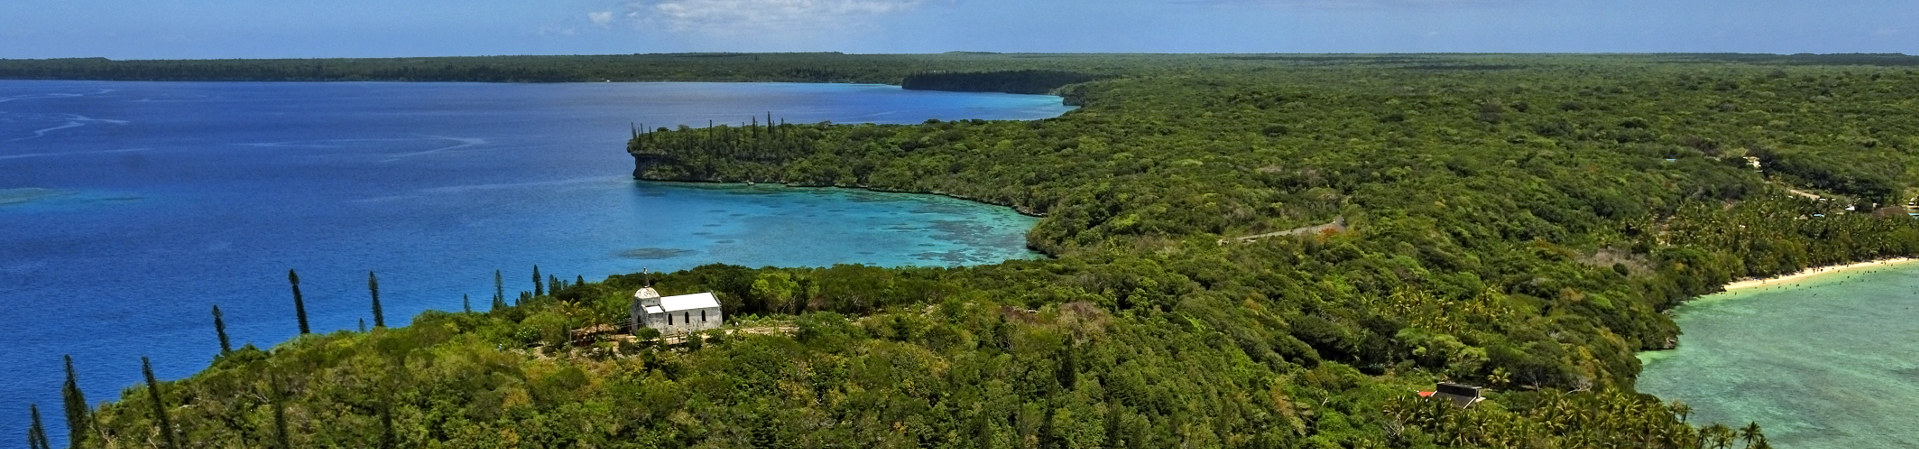 Lifou in new caledonia